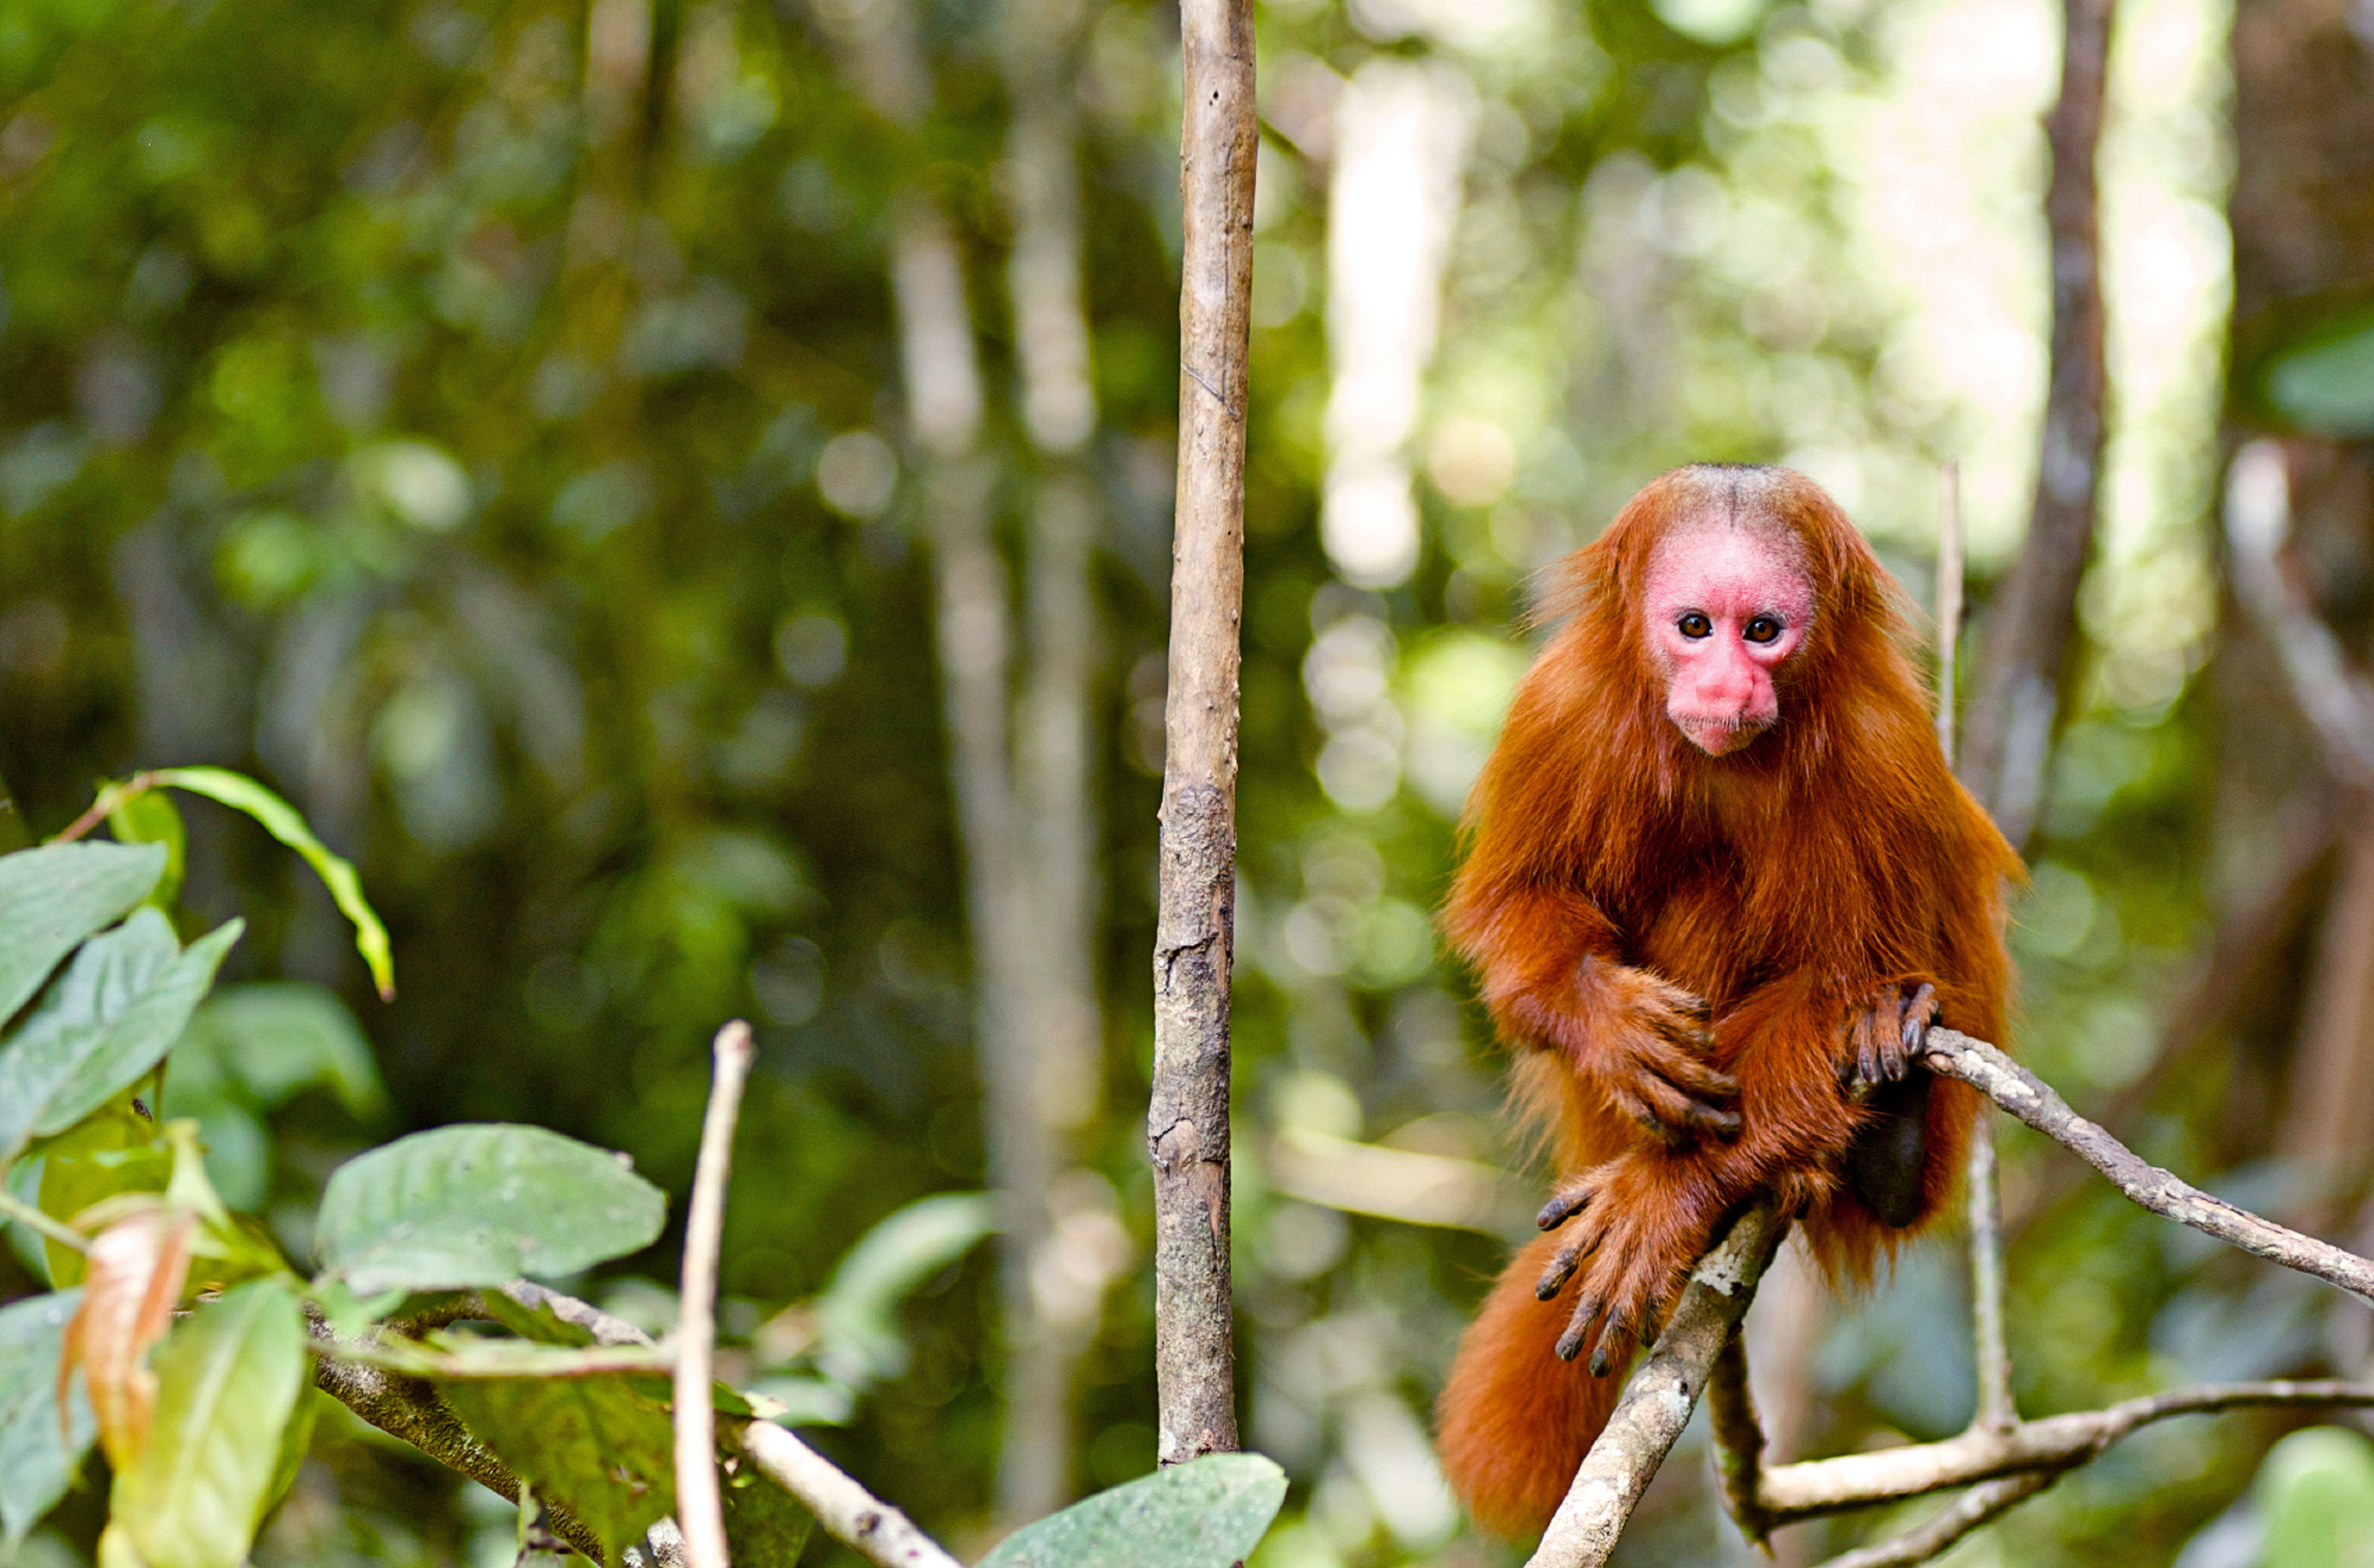 Jungle Natural wonders Nature Outdoor Activities Outdoors Scenic views Travel Tips Wildlife tree animal mammal primate vertebrate fauna new world monkey flora botany Forest monkey macaque leaf flower branch old world monkey woodland rainforest autumn